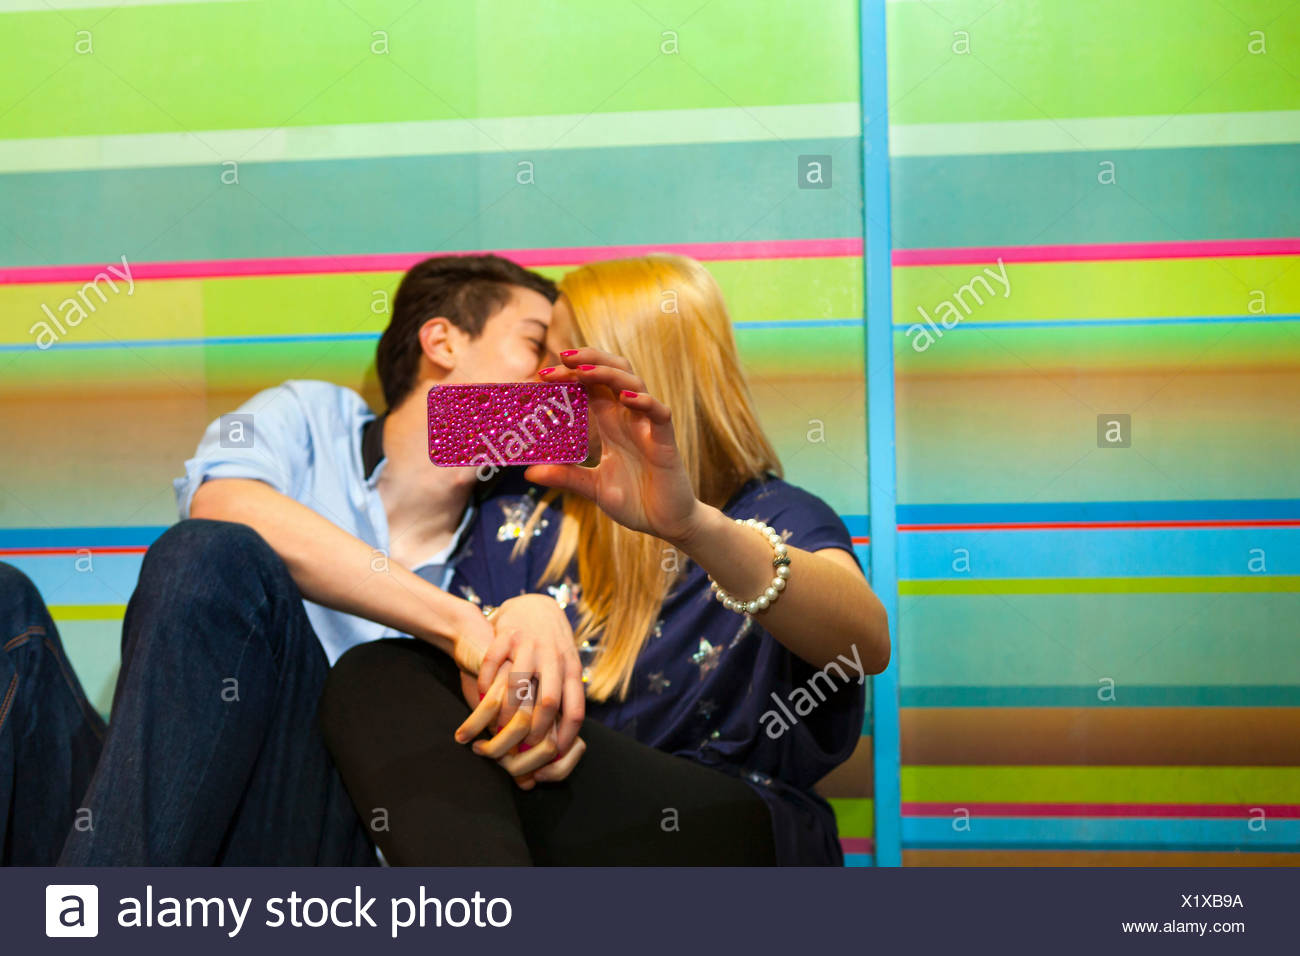 Young couple taking self portrait photograph of kiss Stock Photo